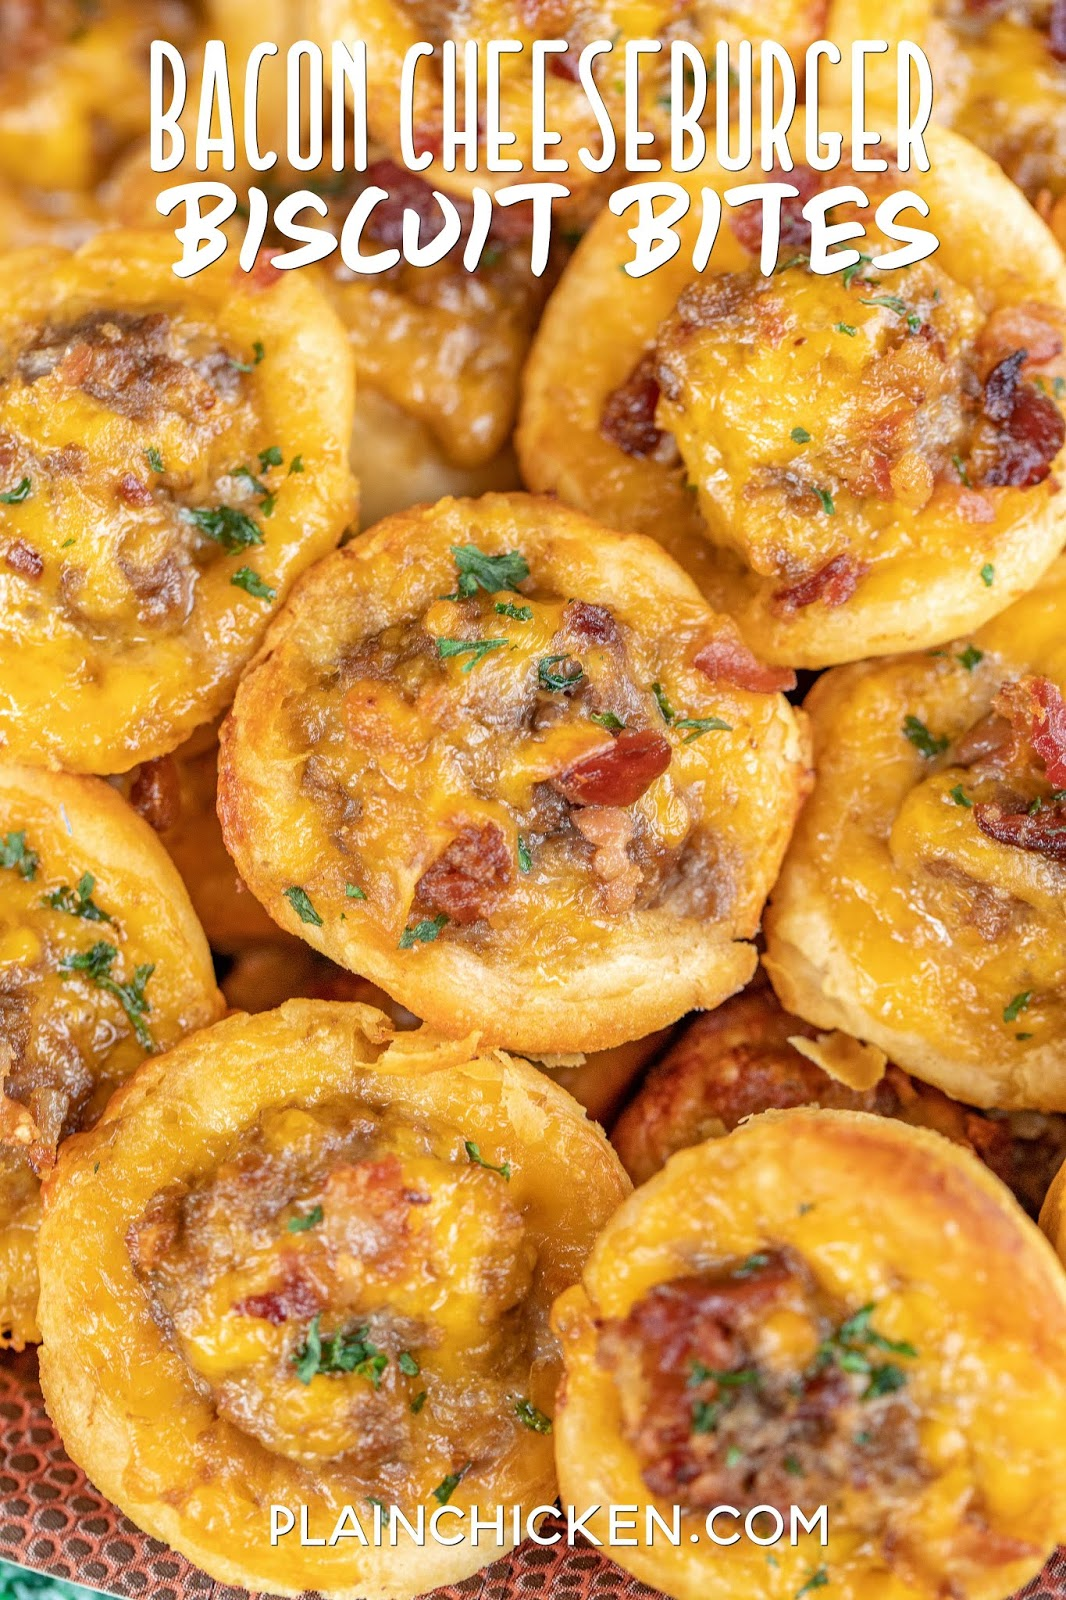 bacon cheeseburger biscuit bites on a plate